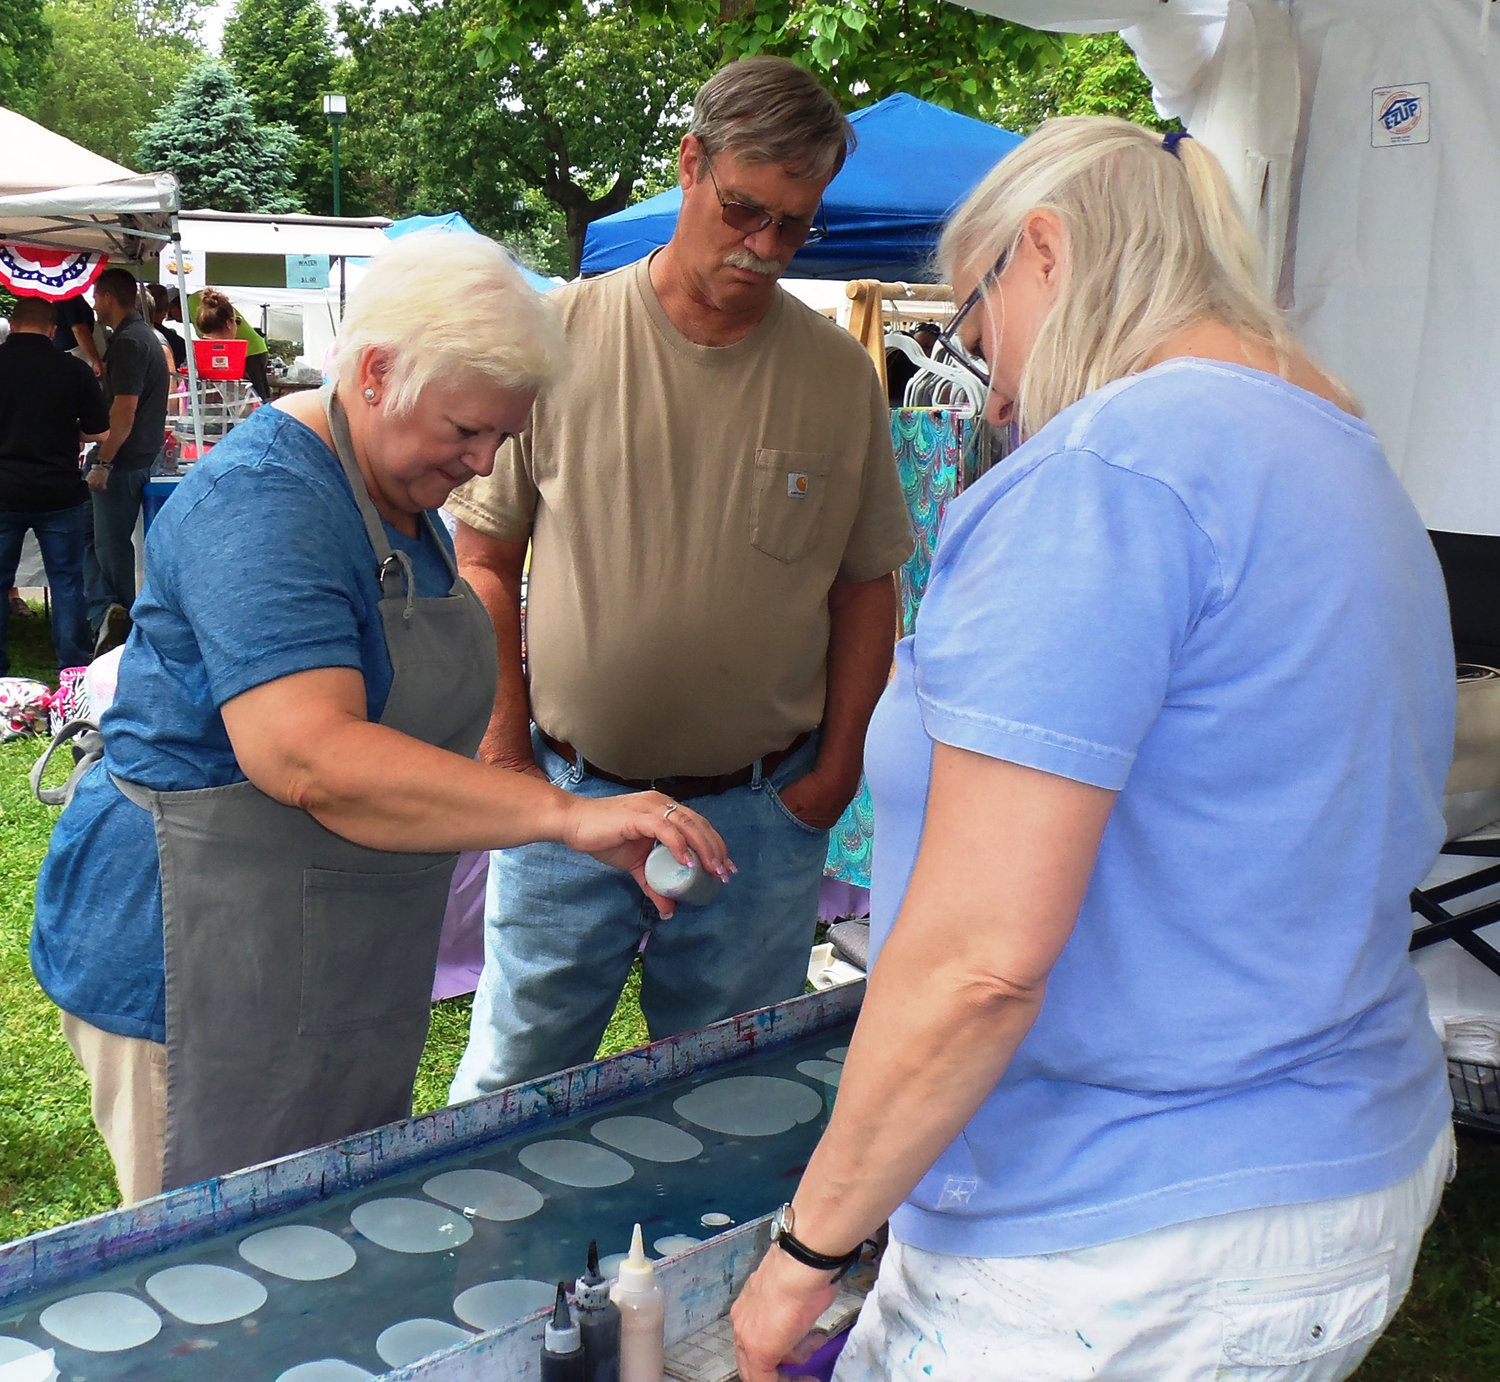 Sharon Moran of Middletown tries her hand at tie-dyeing a silk scarf as Stephanie Keleman, proprieter of Scarves Happen, offer instructions. Scarves Happen, of Swatara Township, was one of rougly 100 vendors participating in the Middletown Area Historical Society's Arts & Crafts Fair on June 8 at Hoffer Park.